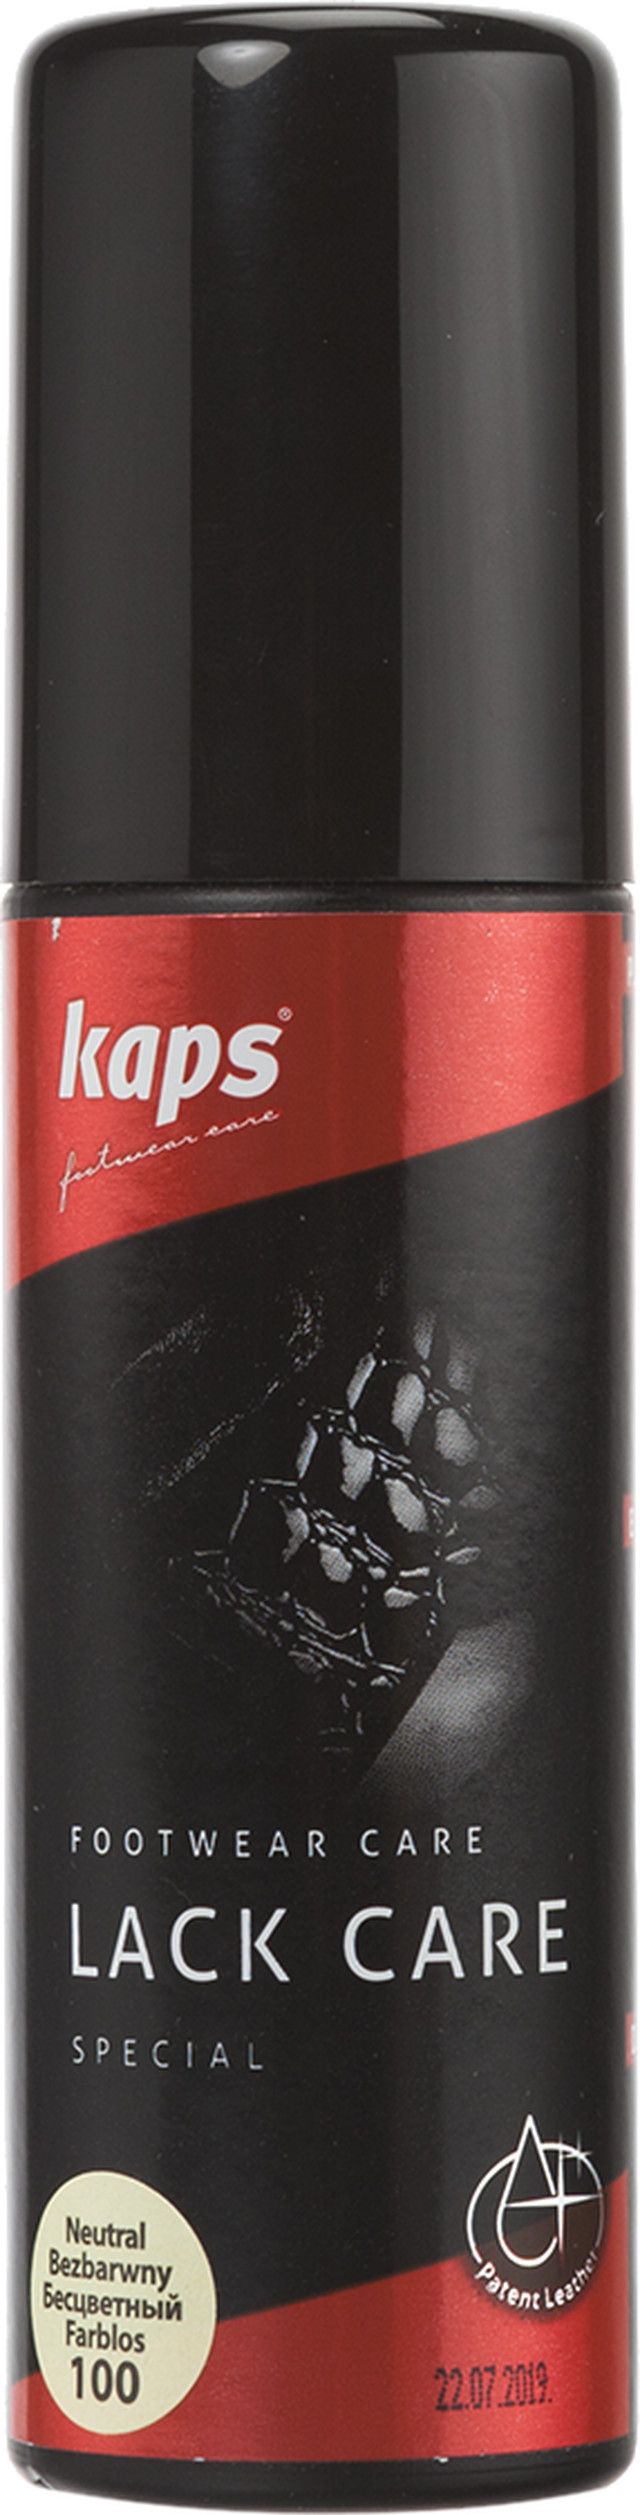 Kaps Lack Care Bezbarwny 75 ml 037 04-5037-100